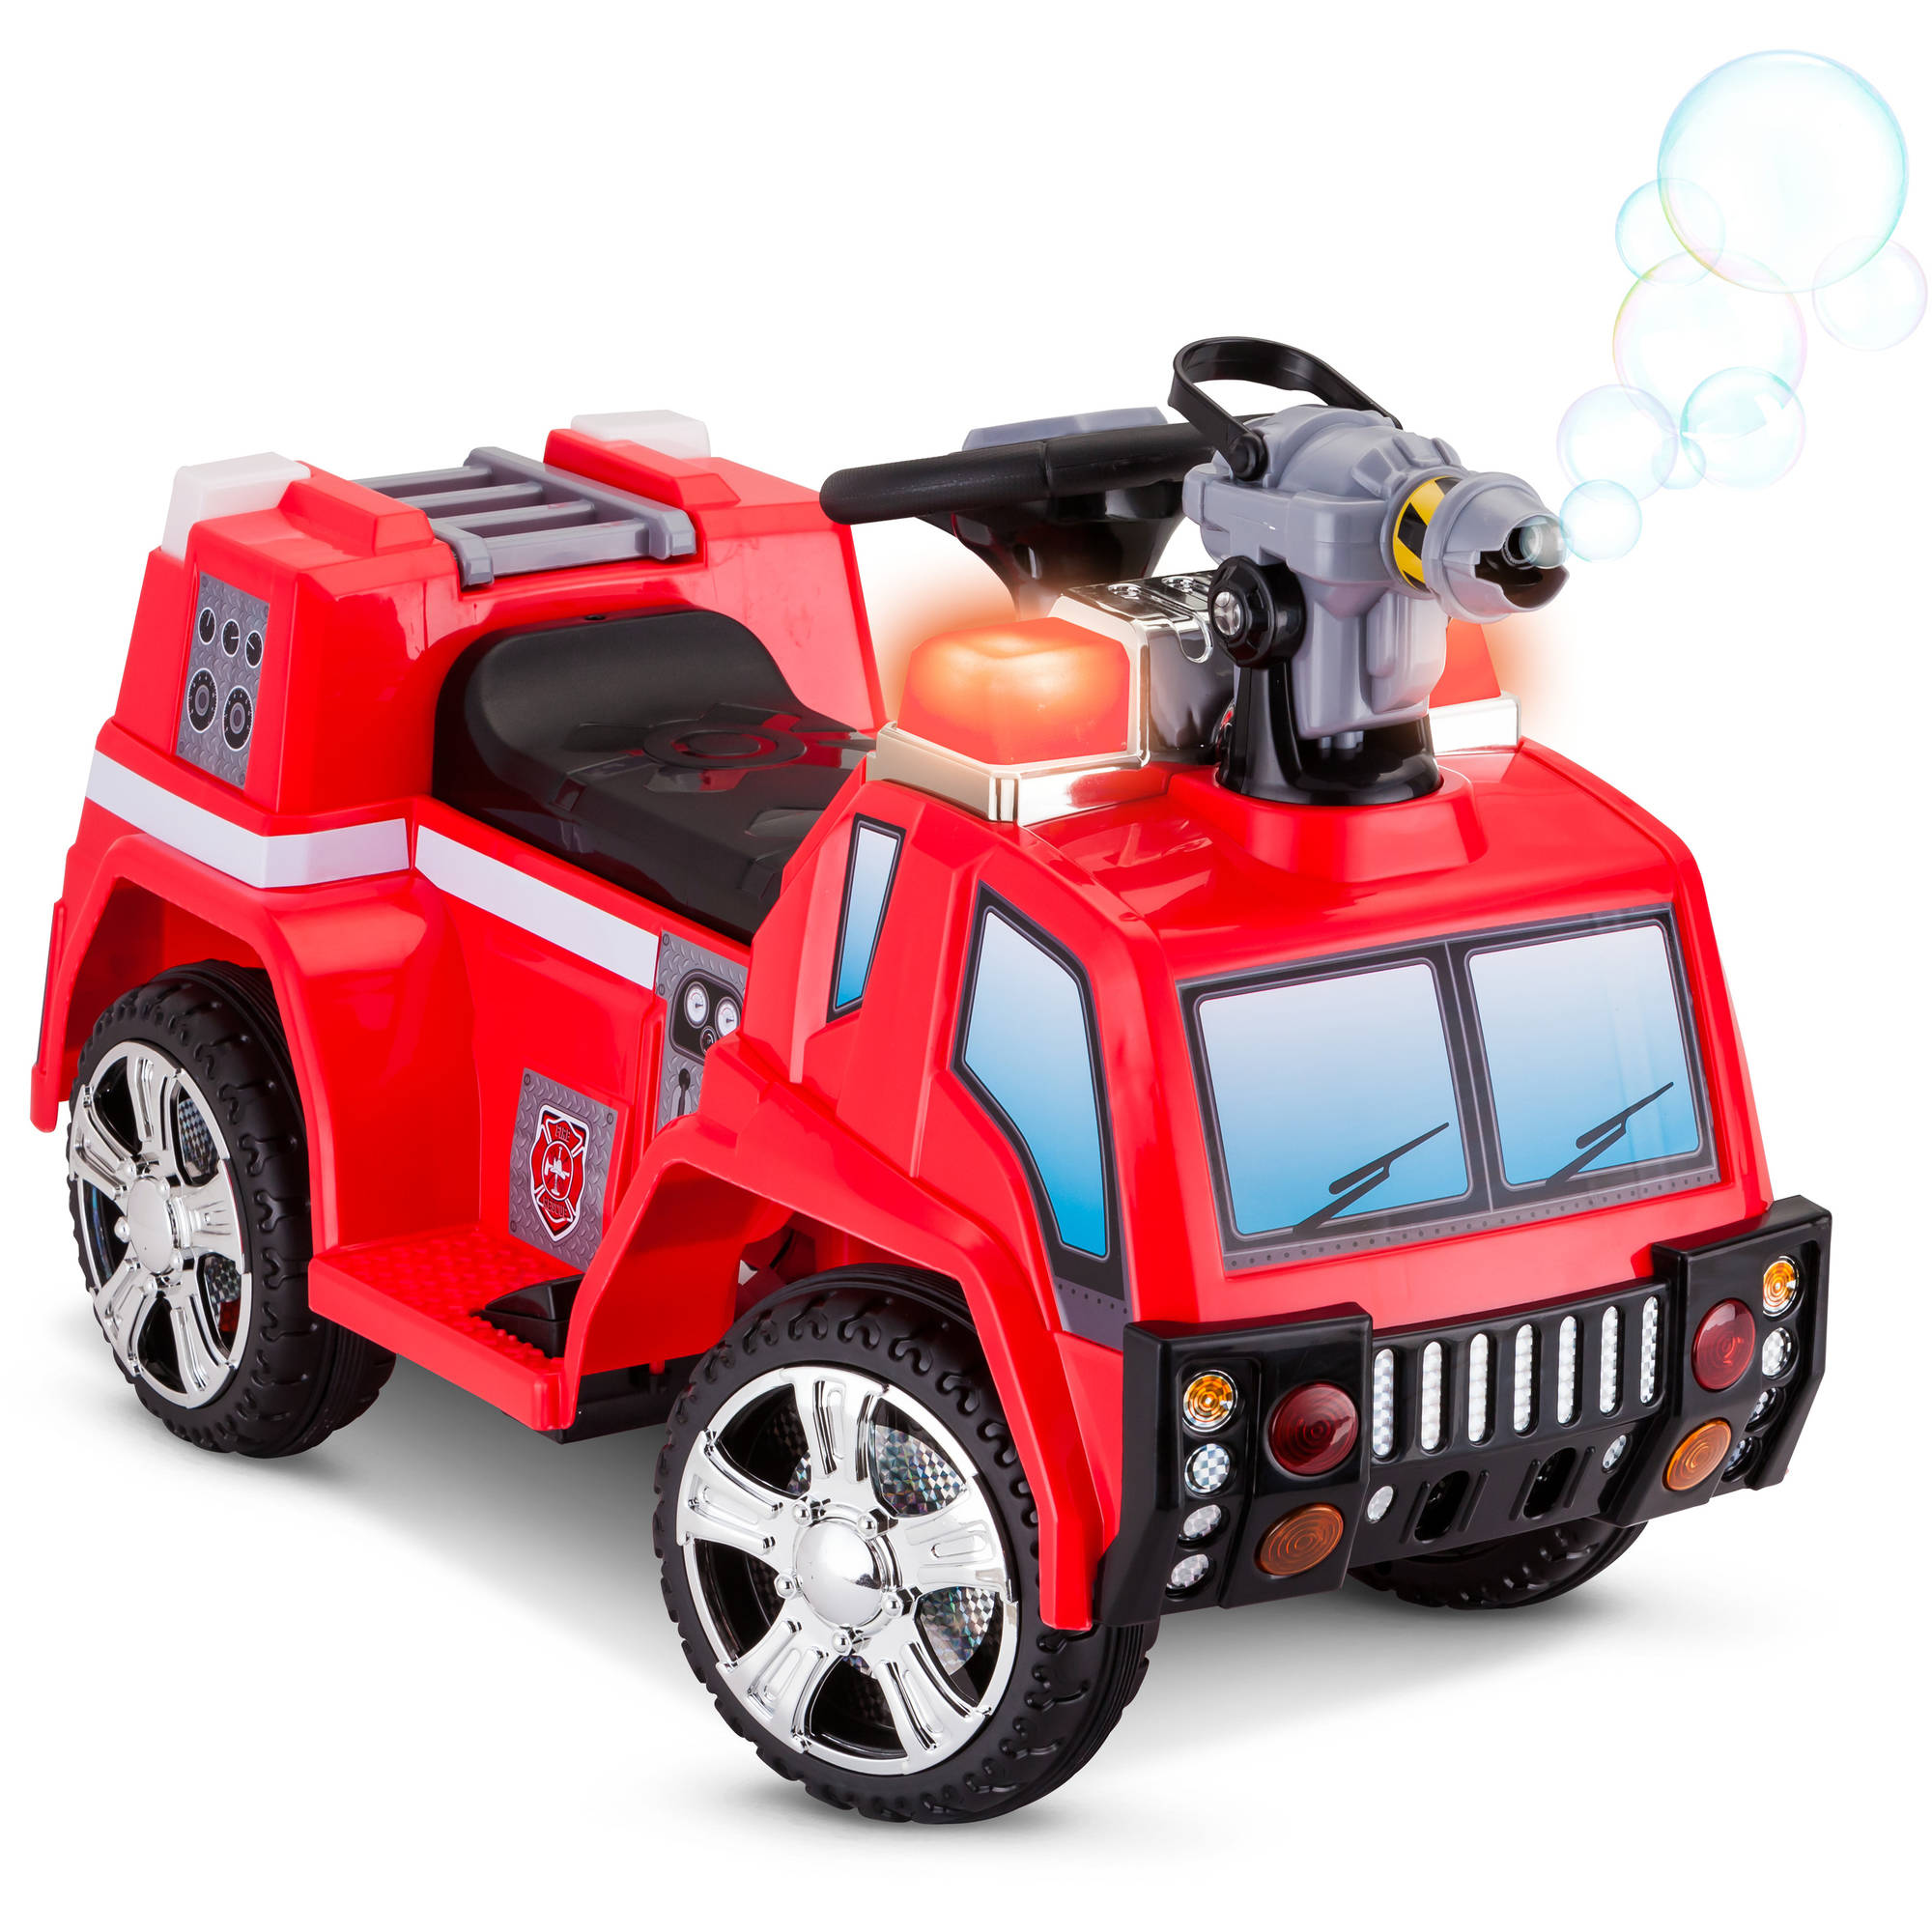 WALL charge AC adapter for KT1233WM KID TRAX Fire Rescue QUAD ride on BUBBLE GUN